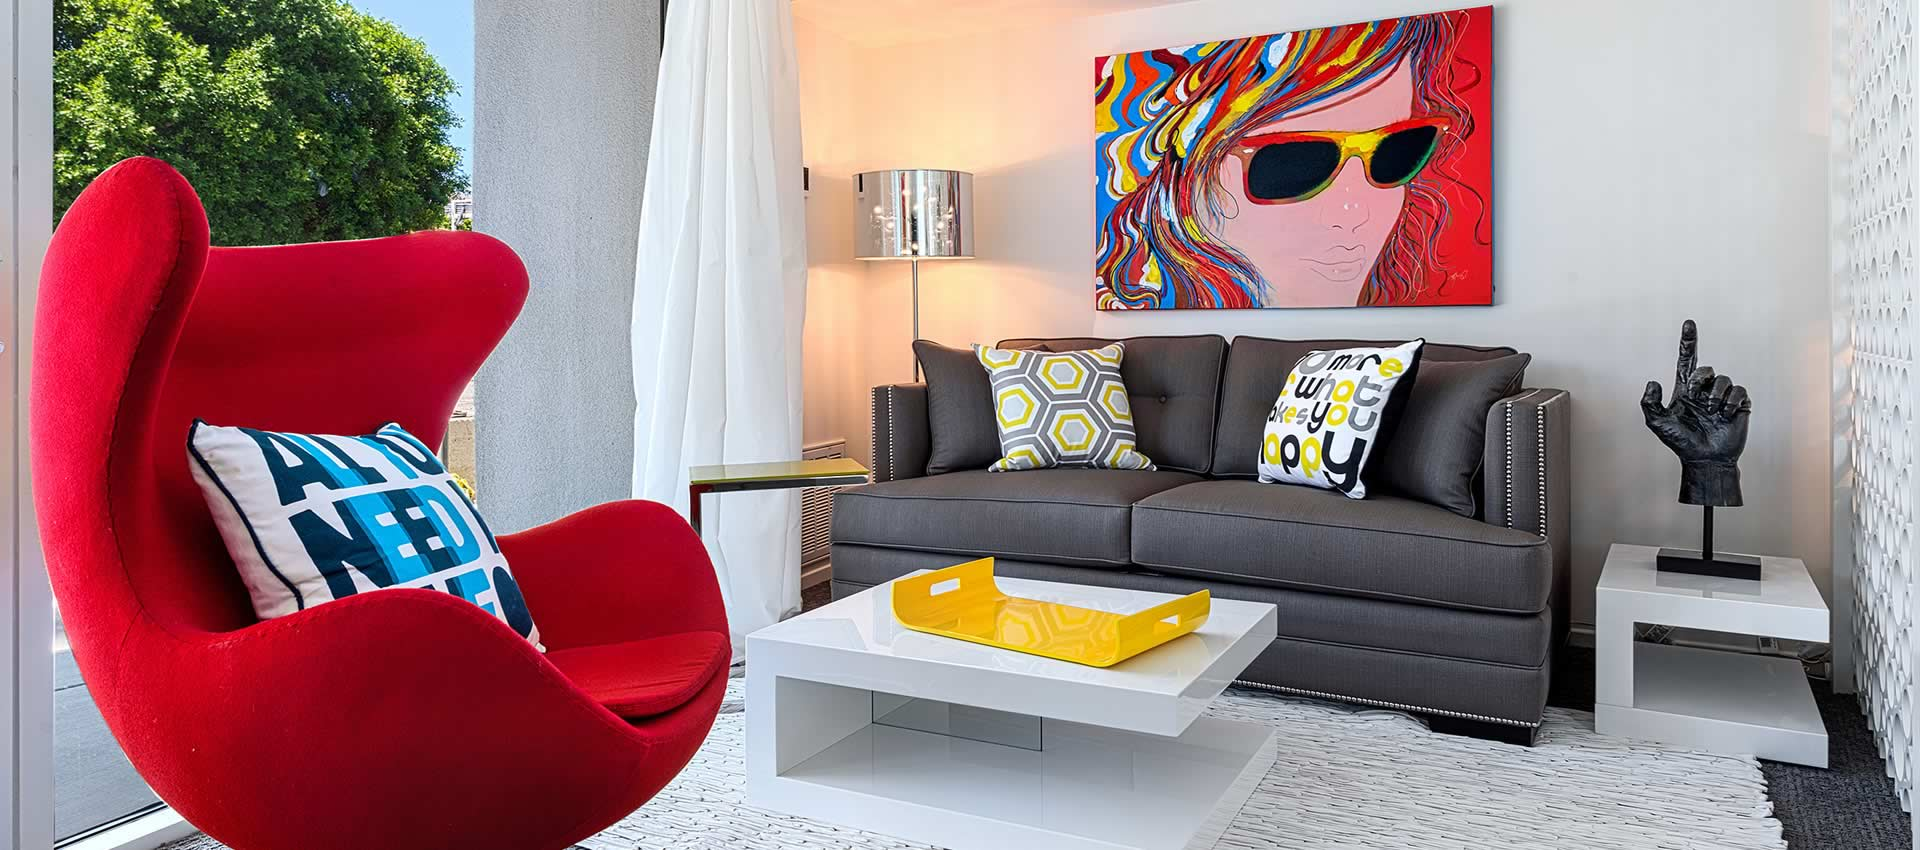 Twist Hotel Studio Units living area modern couch and chair